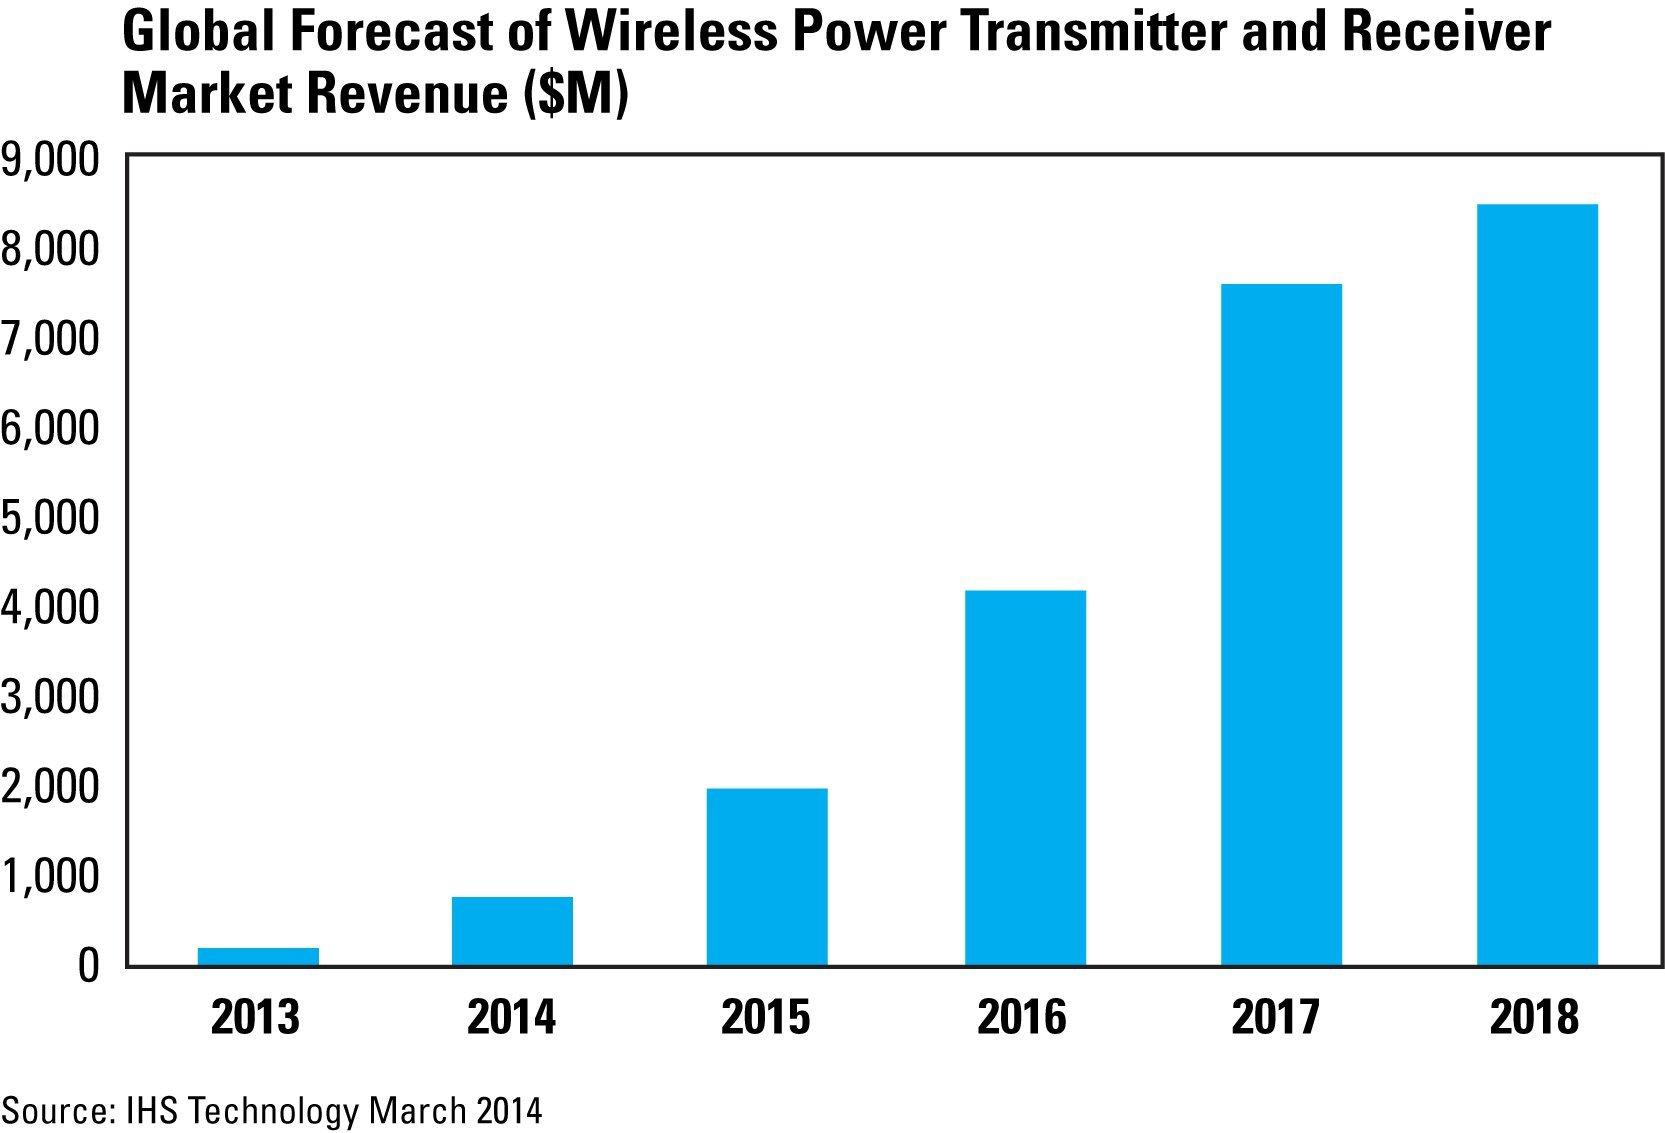 Figure 1: Global Forecast of Wireless Power Transmitter and Receiver Market revenue ($M)